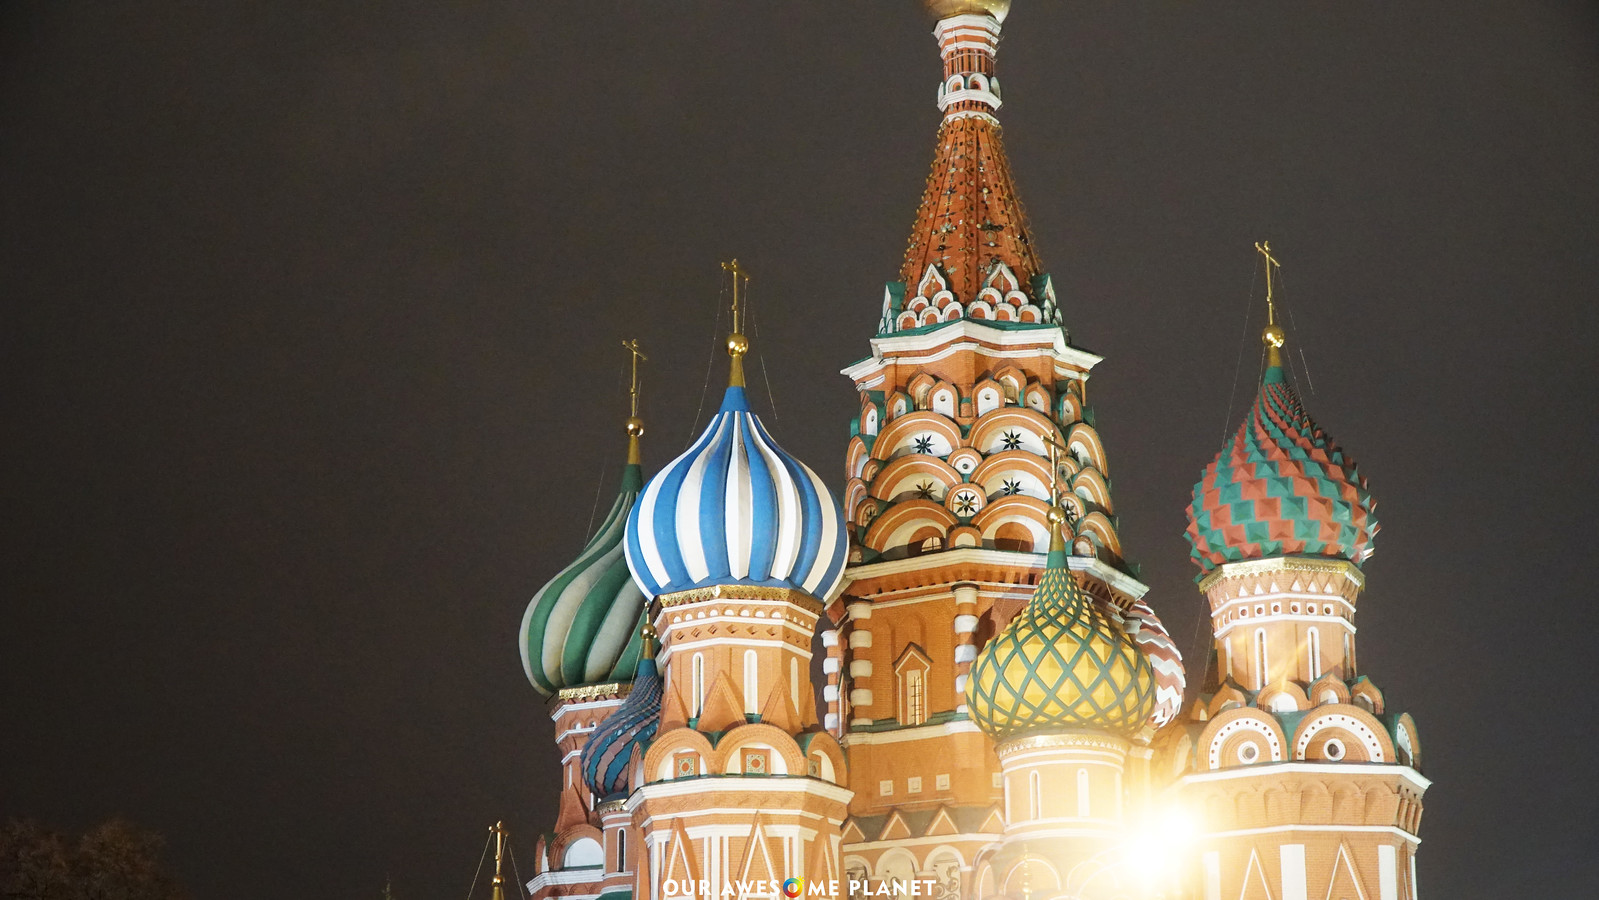 MOSCOW: A Tour of the Iconic Red Square and Kremlin